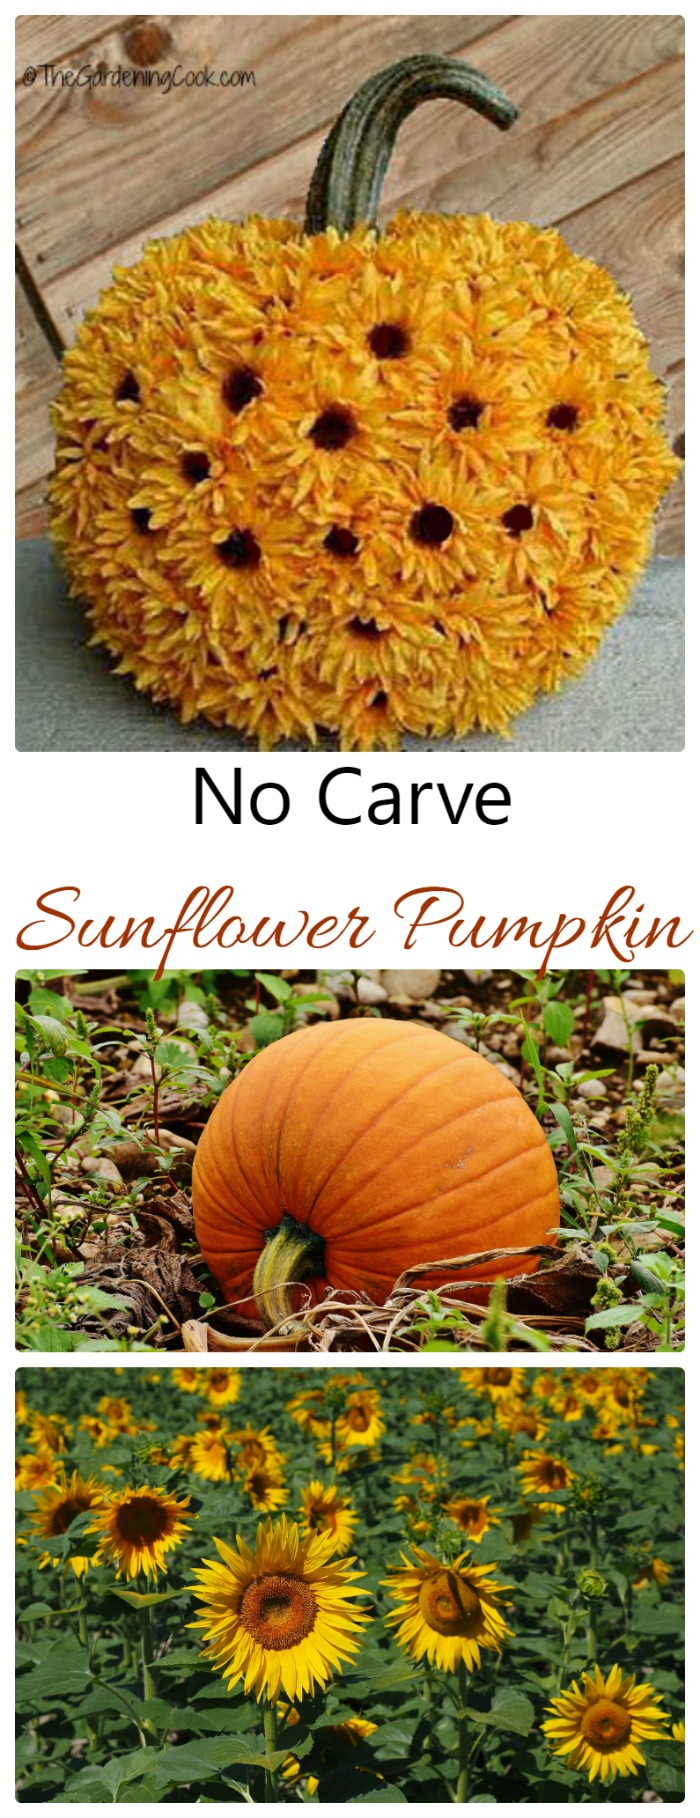 This no carve sunflower pumpkin is mess free and makes such a pretty display.